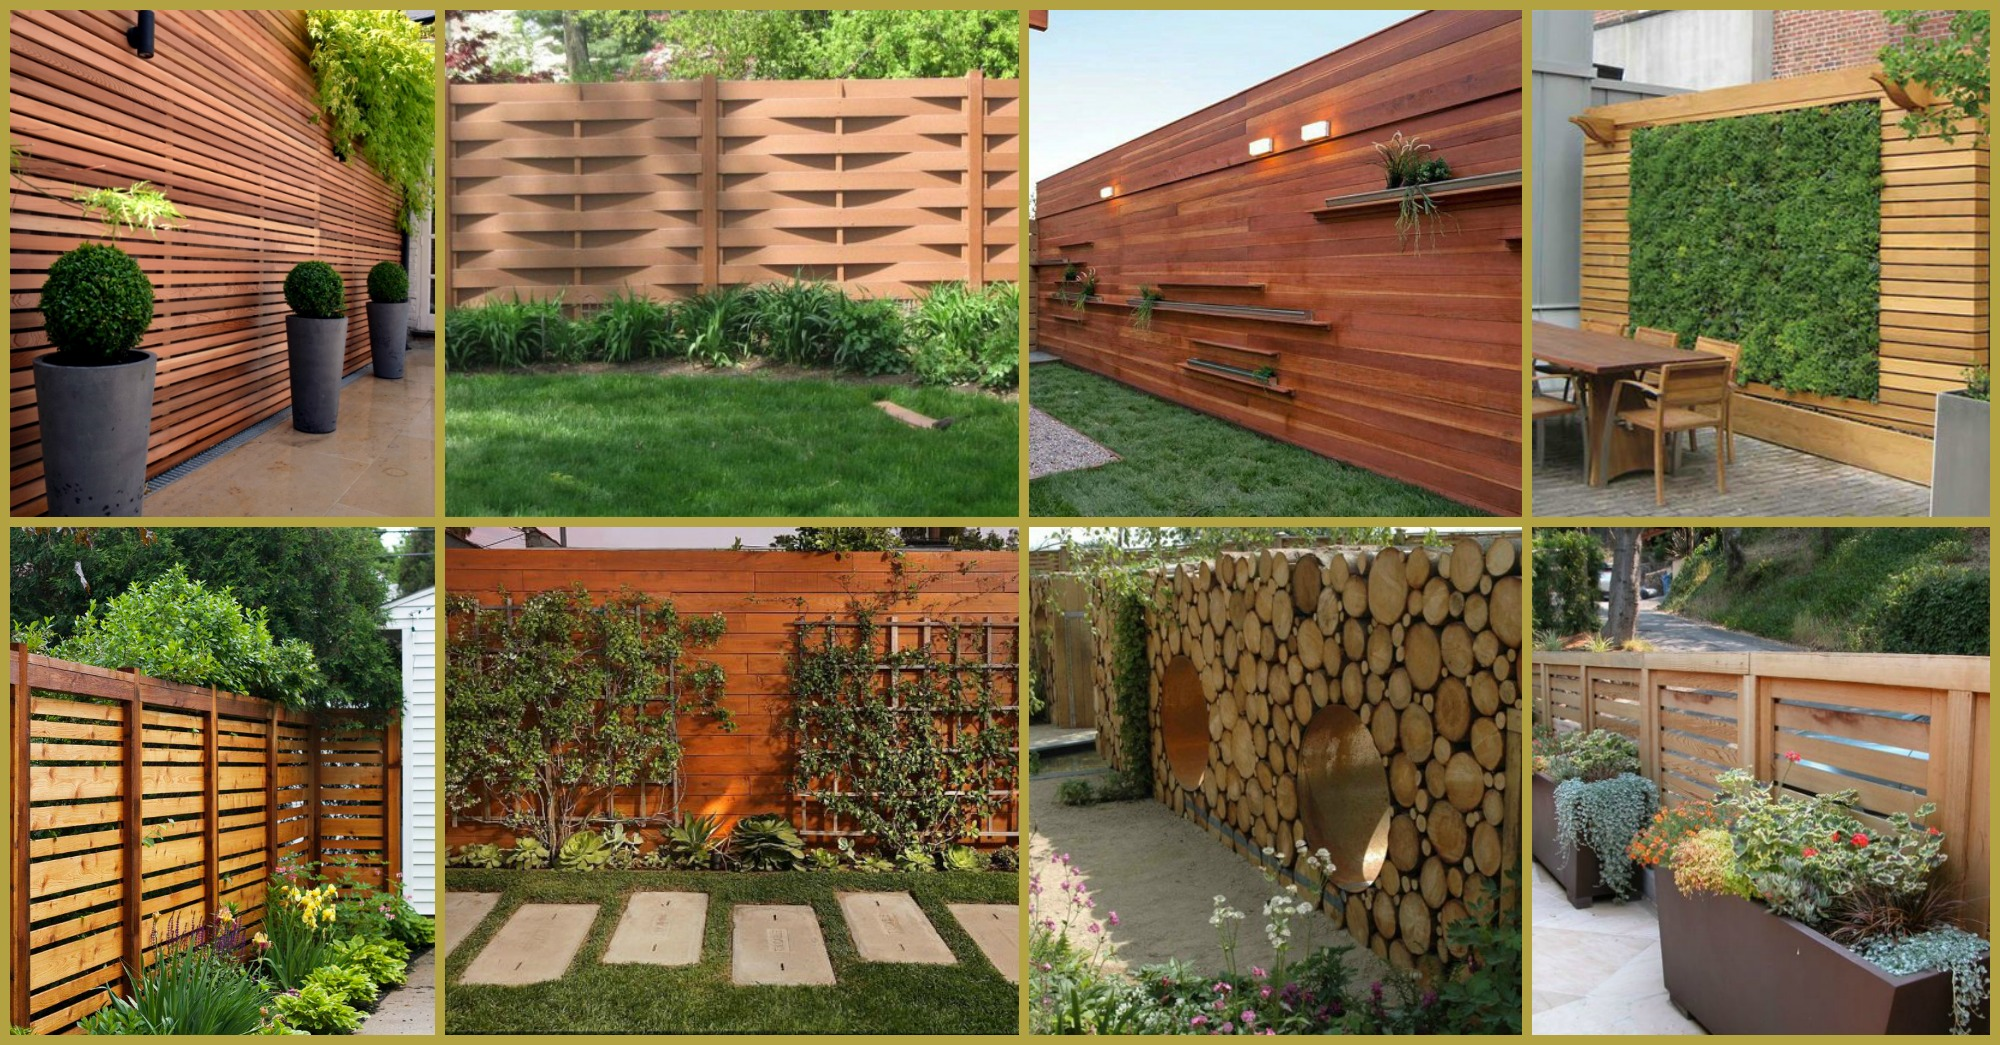 Wonderful Wooden Fence Ideas For Your Outdoor Decor on Backyard Wall Decor Ideas  id=23590